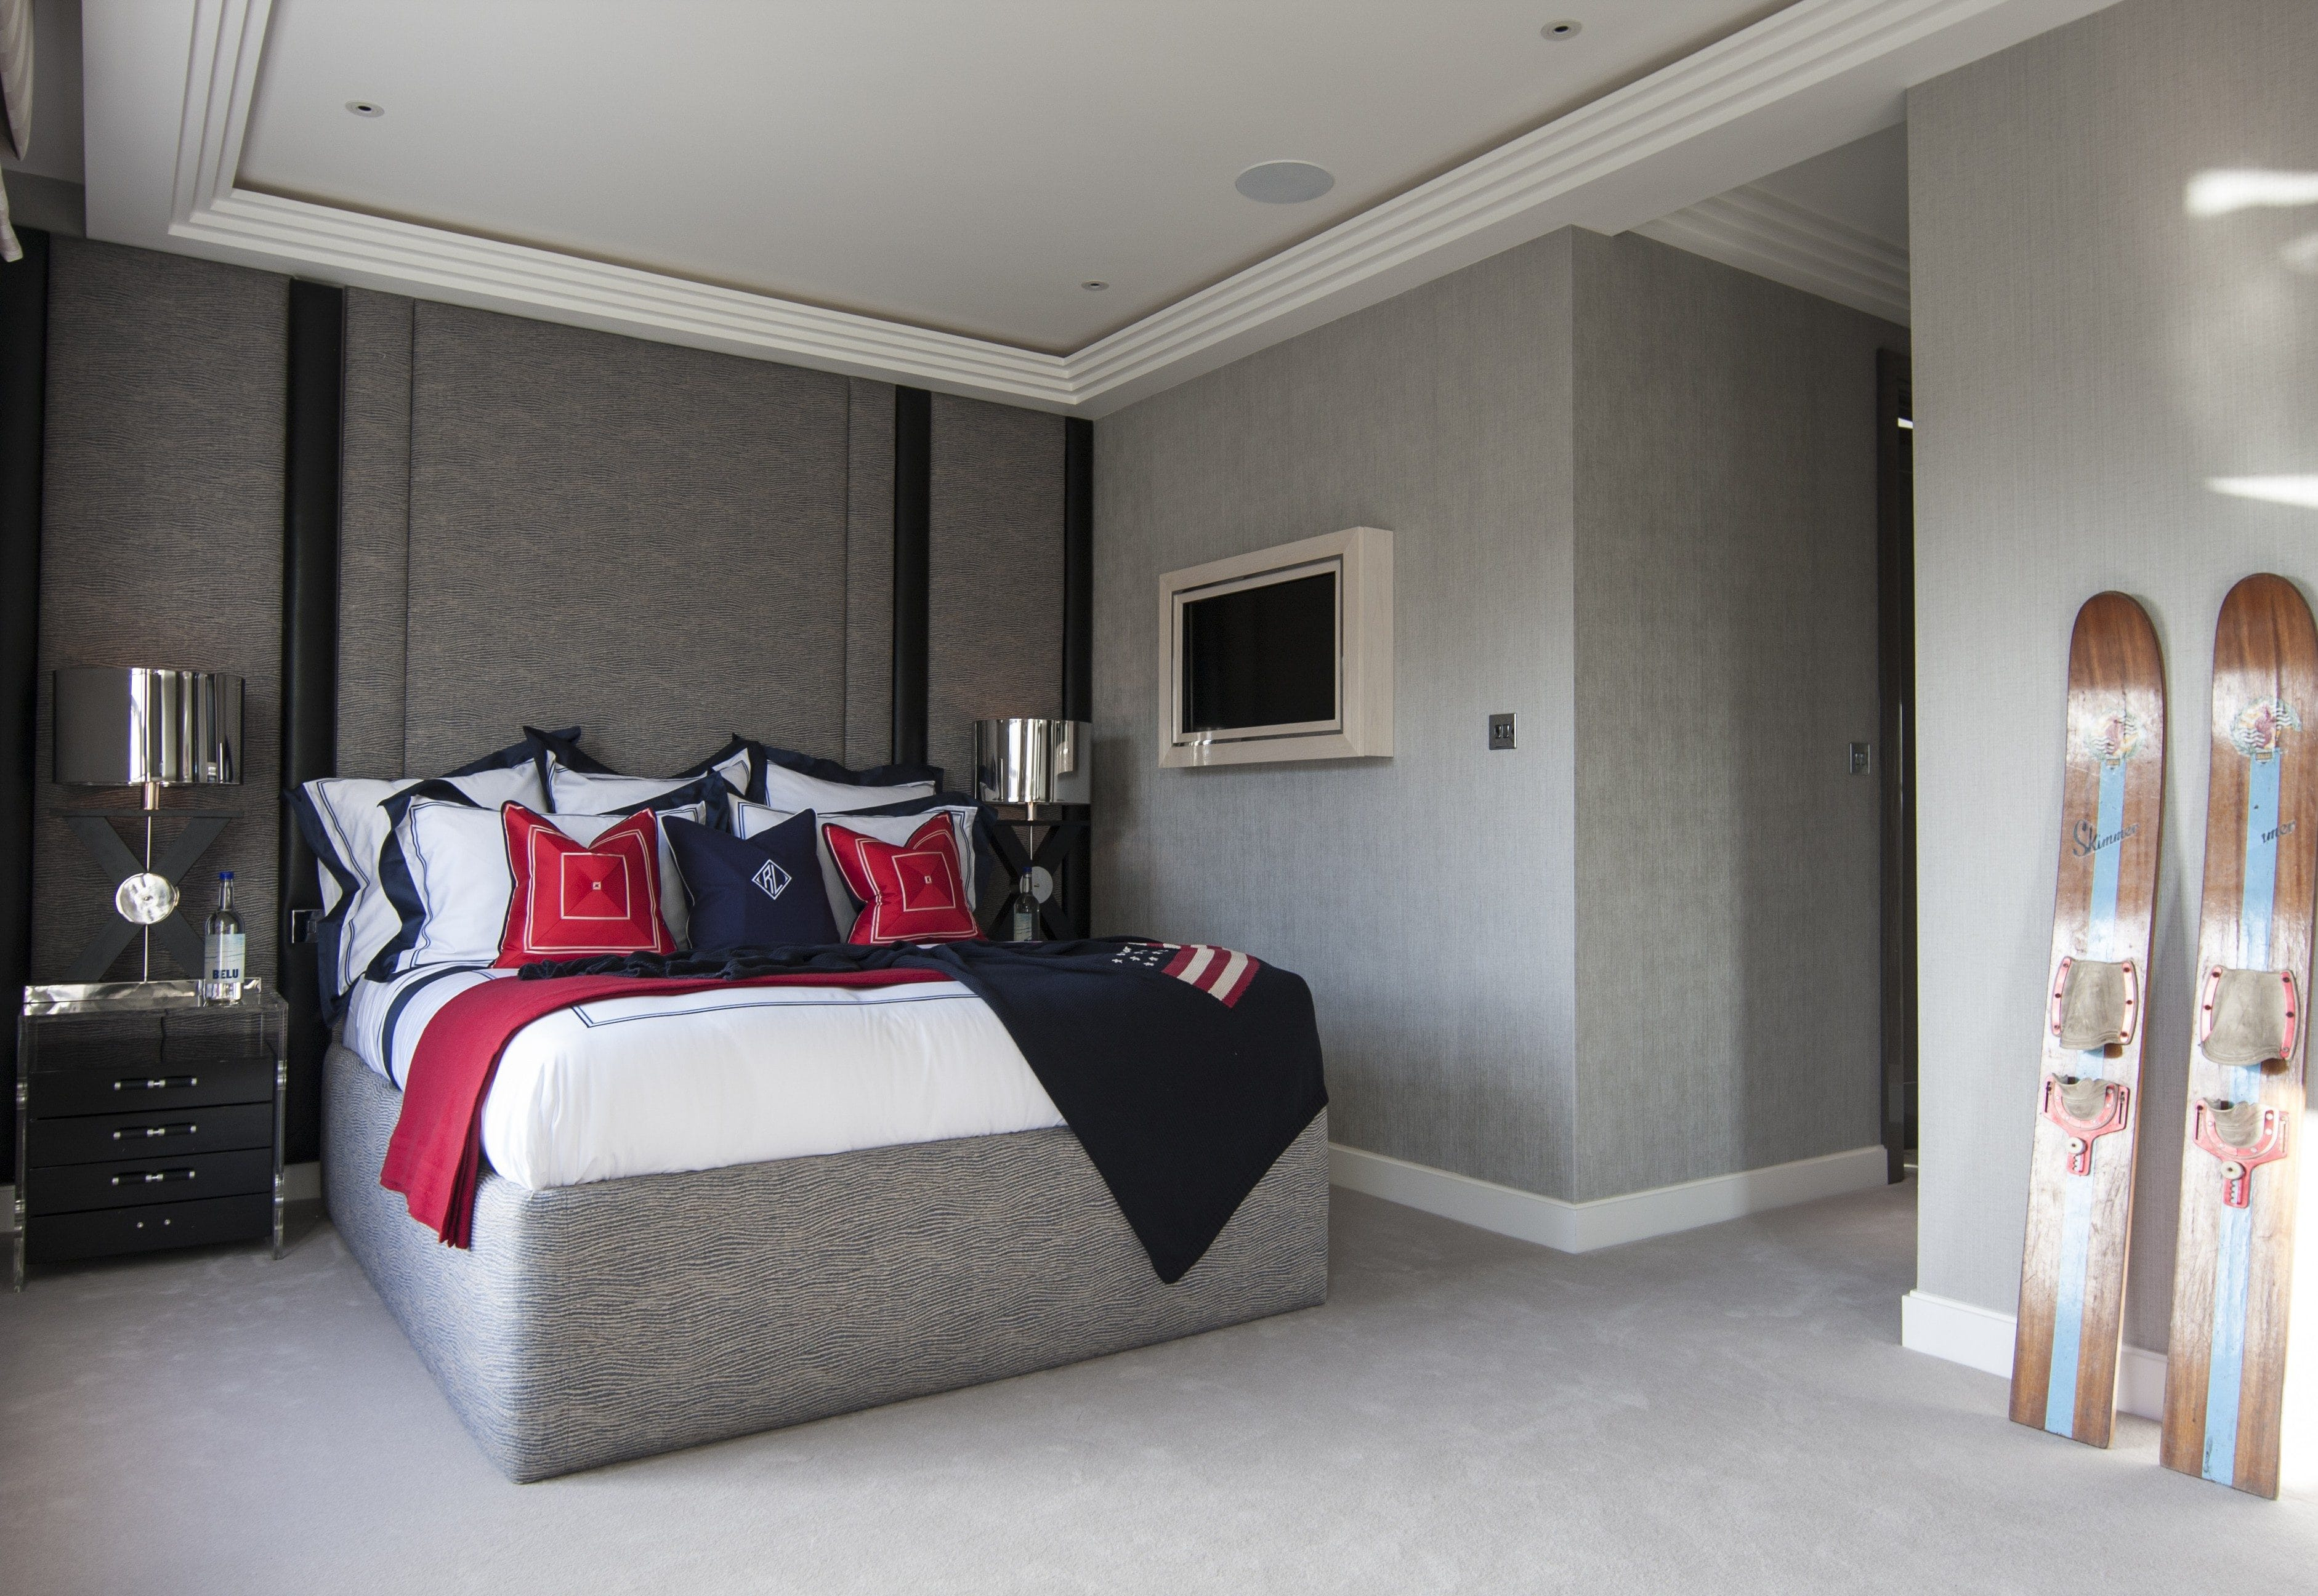 bespoke furniture bed wallcoverings soft grey red blue accents